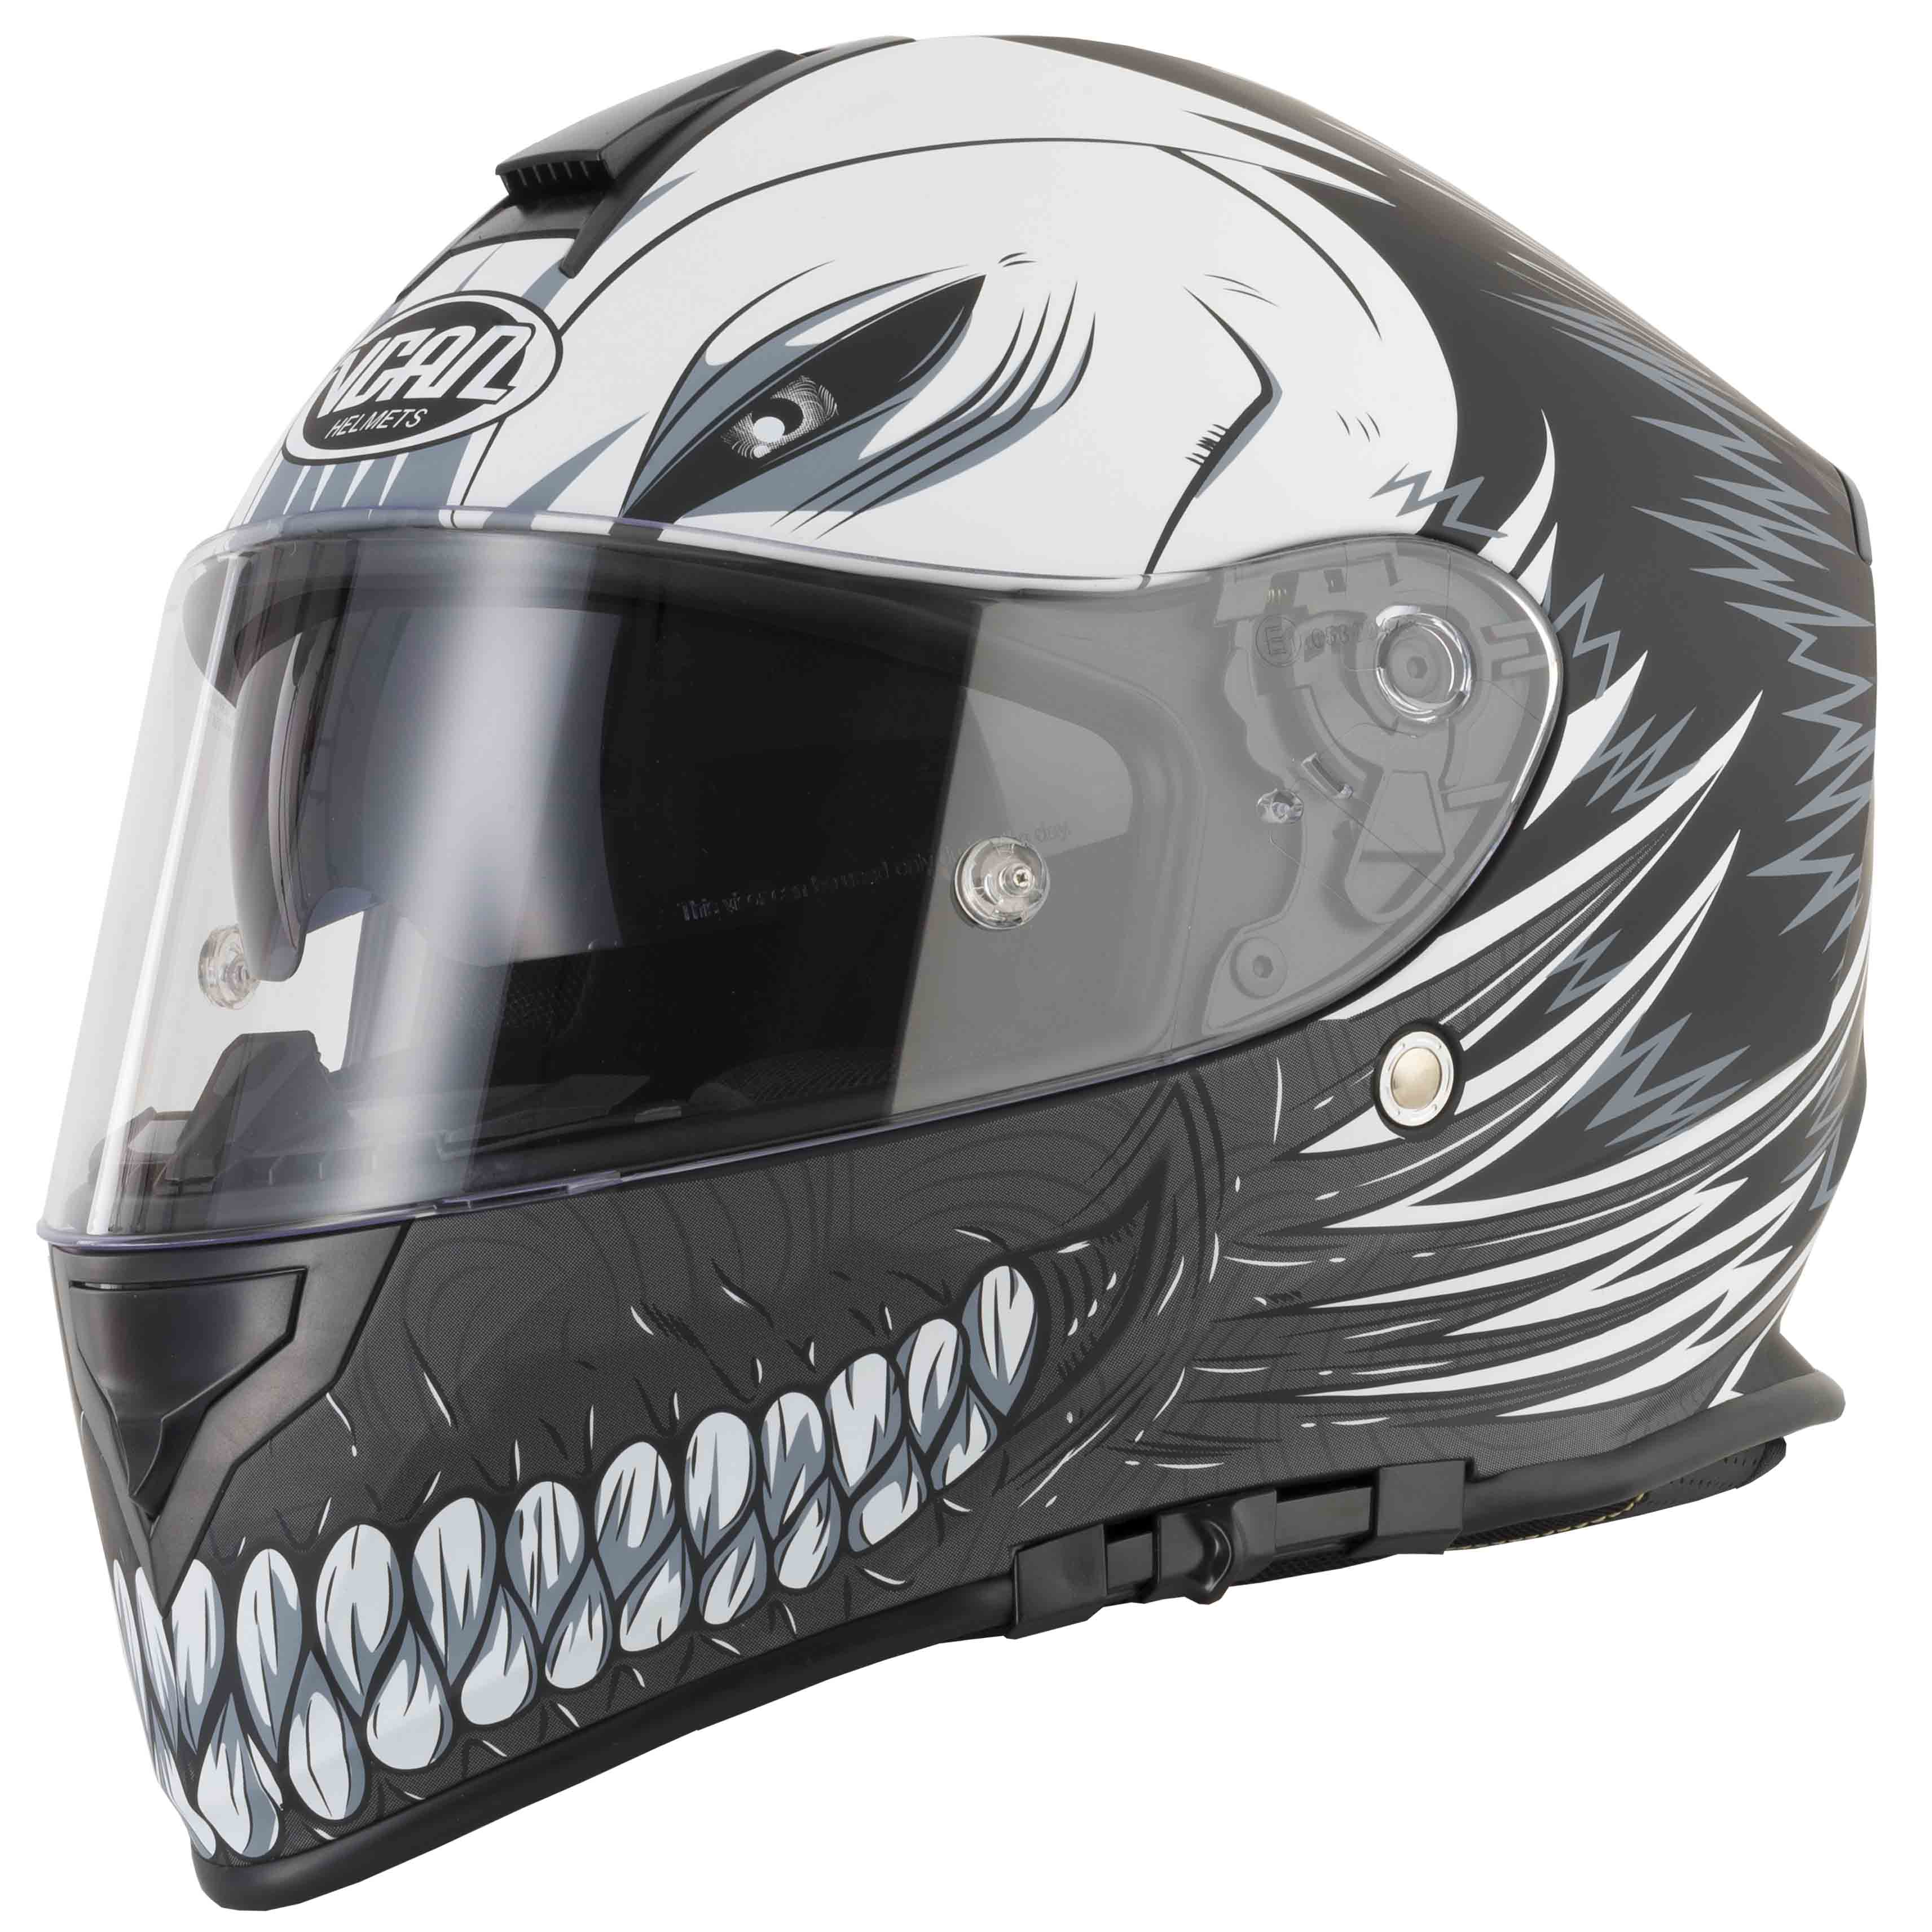 Full face helmet Vcan V127 Hollow Matt black medium